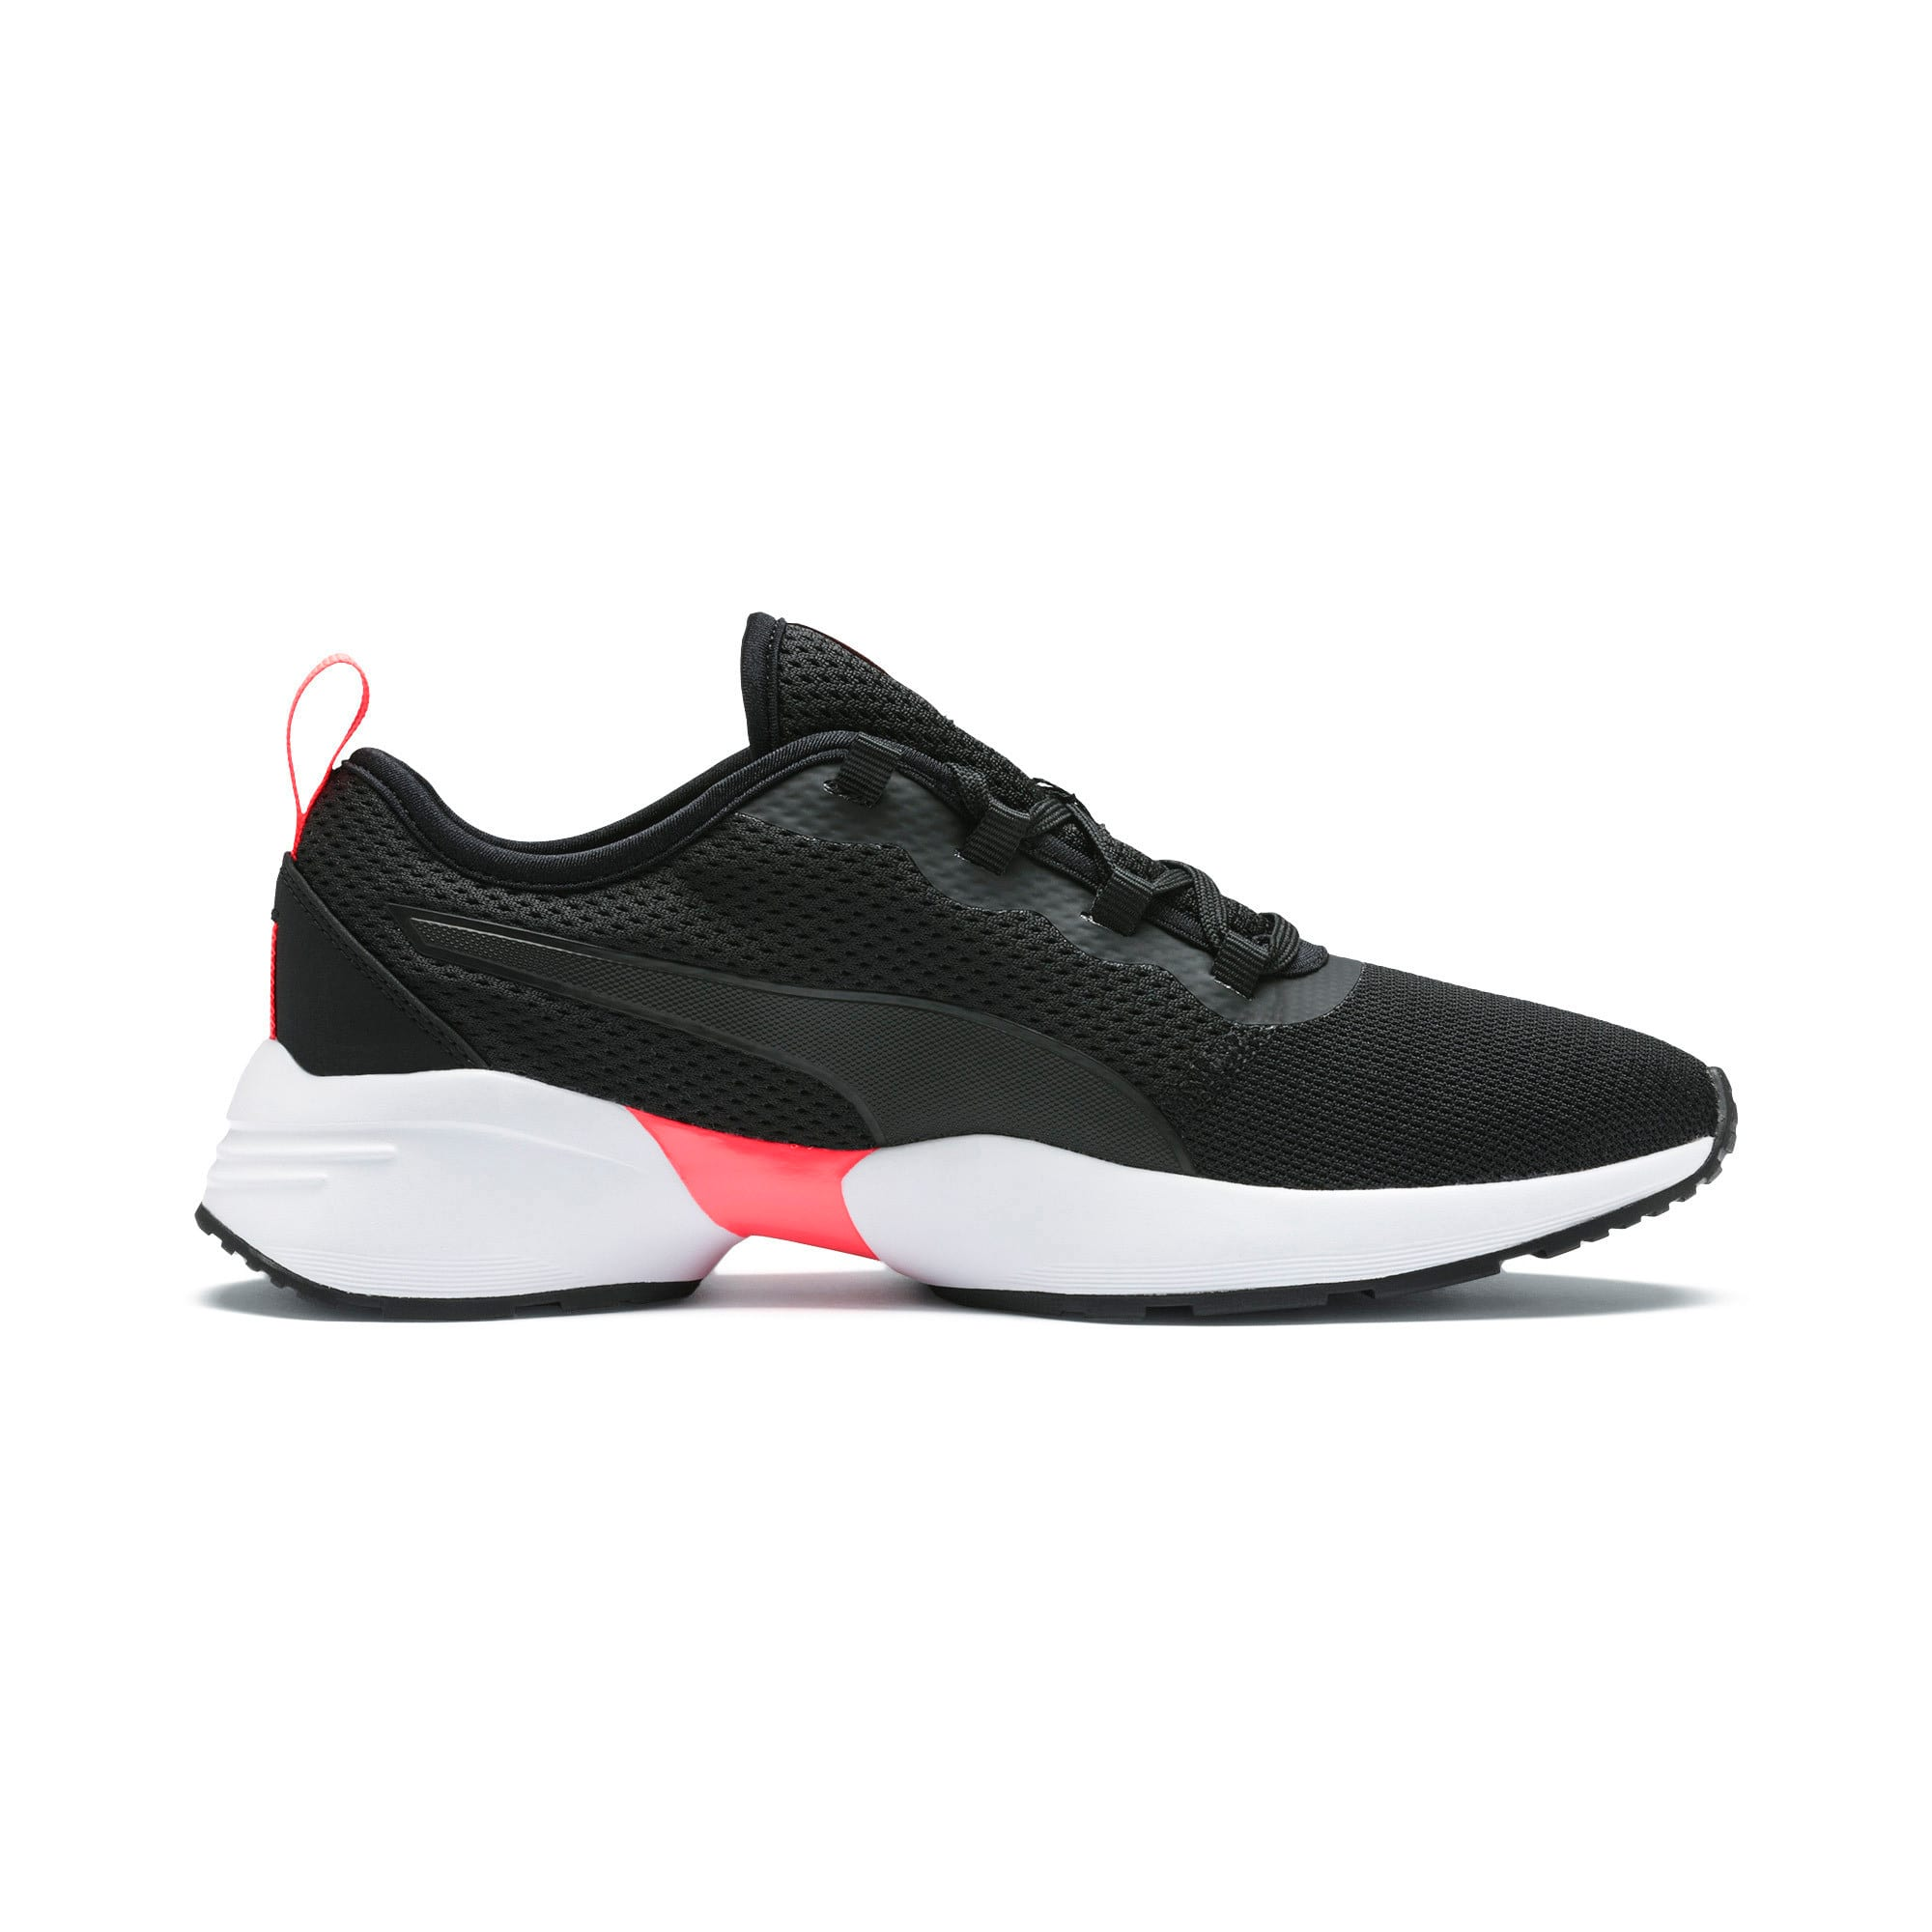 Thumbnail 6 of Sirena Sport Women's Trainers, Puma Black-Pink Alert, medium